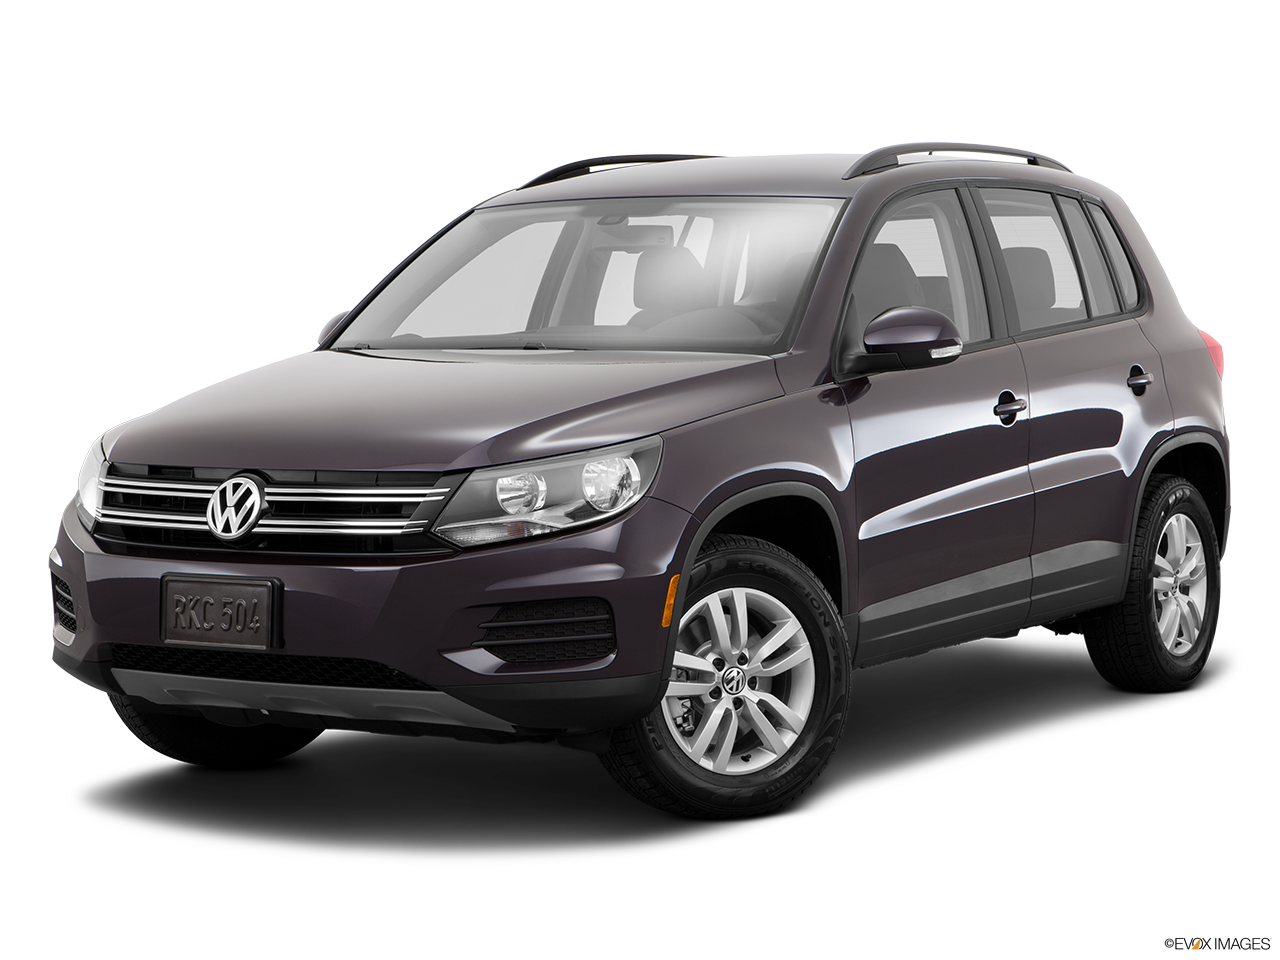 2016 volkswagen tiguan dealer serving syracuse romano volkswagen. Black Bedroom Furniture Sets. Home Design Ideas